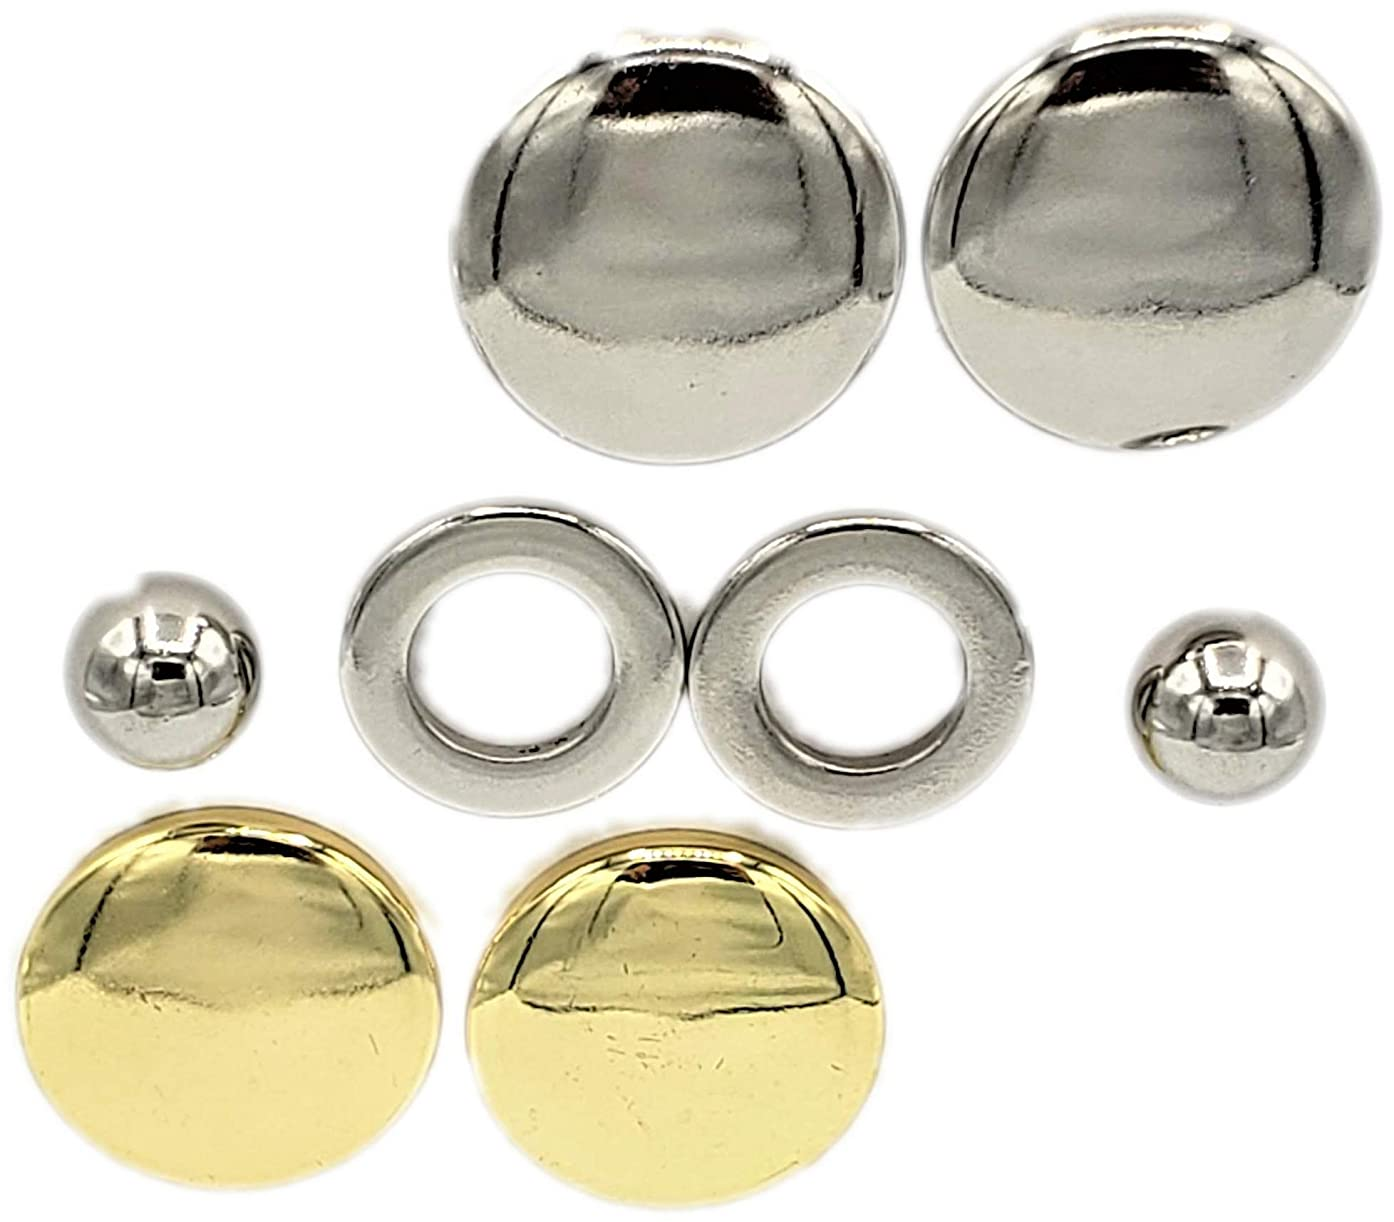 Maggies 8 Piece kit of Patented Fastening Parts Allows Unlimited Options for Every Fabric Fastening Need. It Contains 2 Magnet Spheres, 2 Custom Steel Rings, 2 Gold and 2 Silver Magnet Protectors.